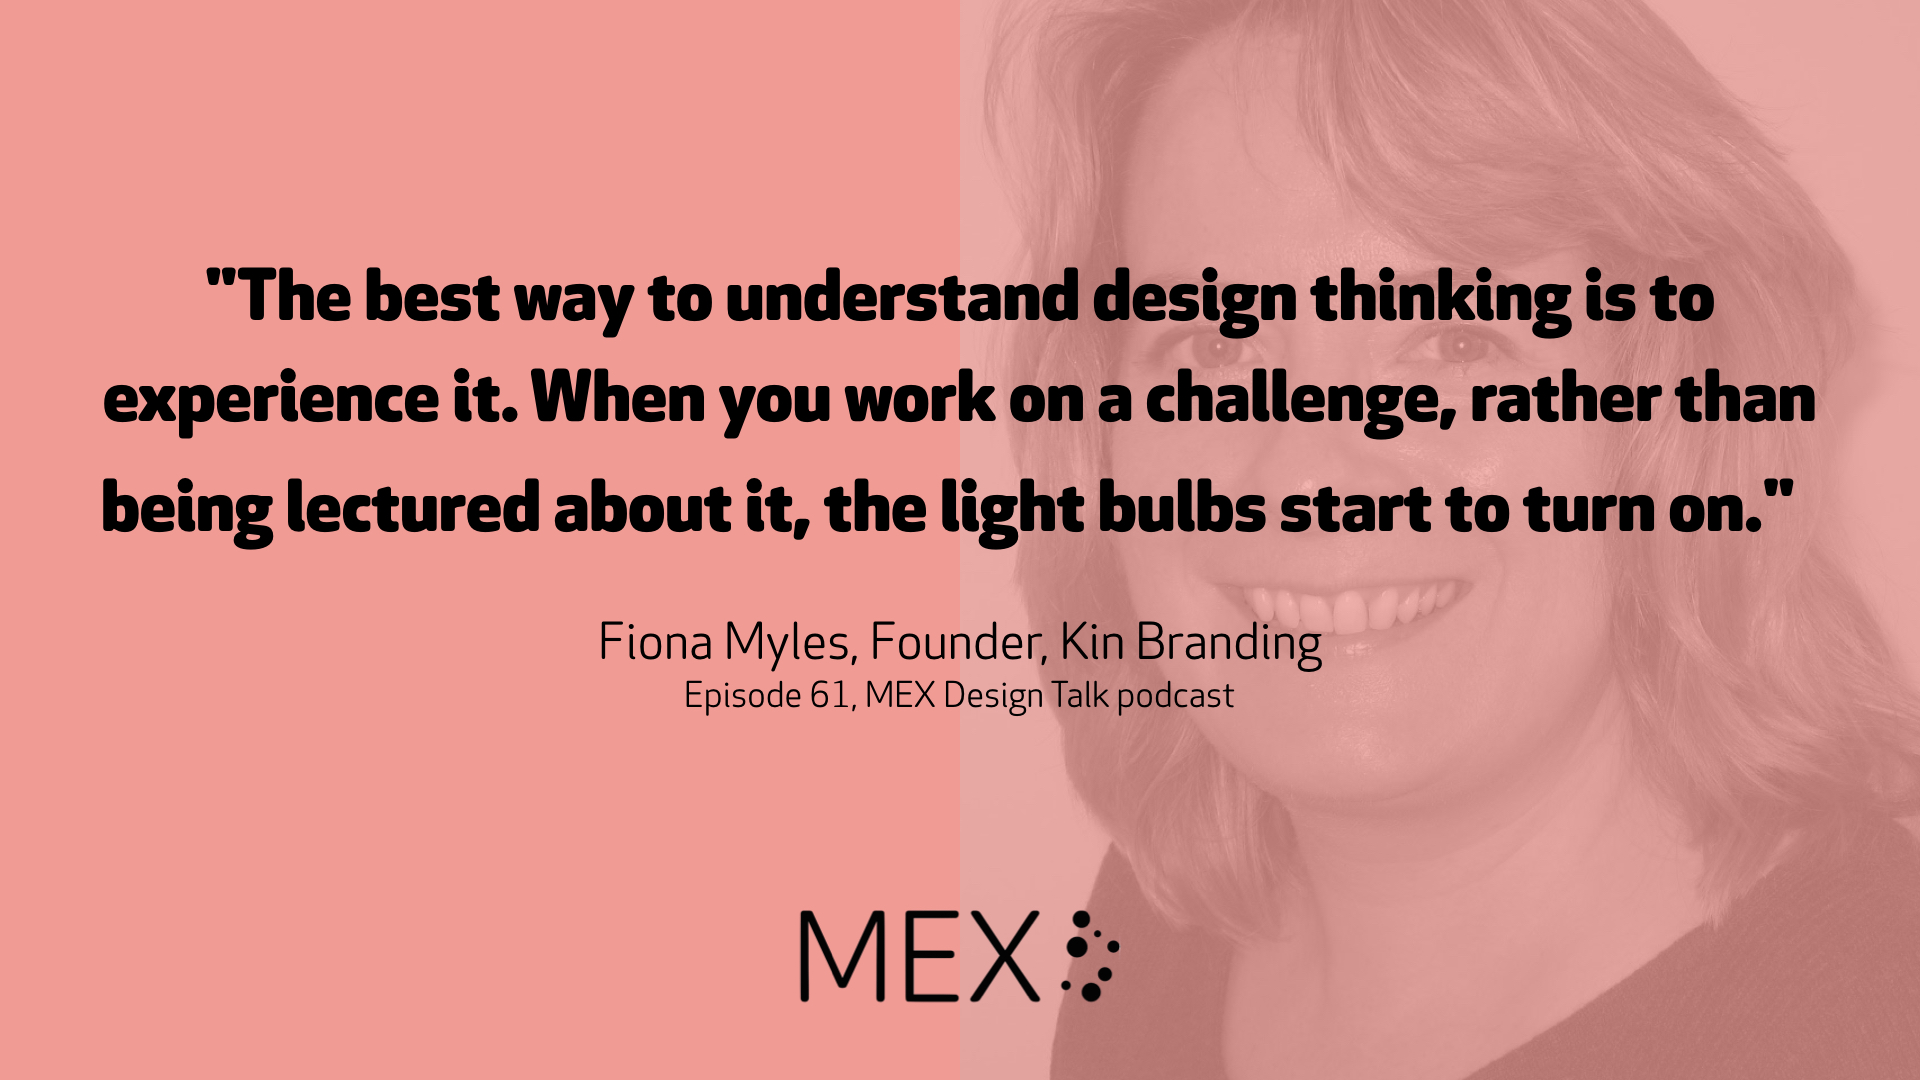 """""""The best way to understand design thinking is to experience it. When you work on a challenge, rather than being lectured about it, the light bulbs start to turn on.""""  Fiona Myles, Founder, Kin Branding Episode 61, MEX Design Talk podcast"""